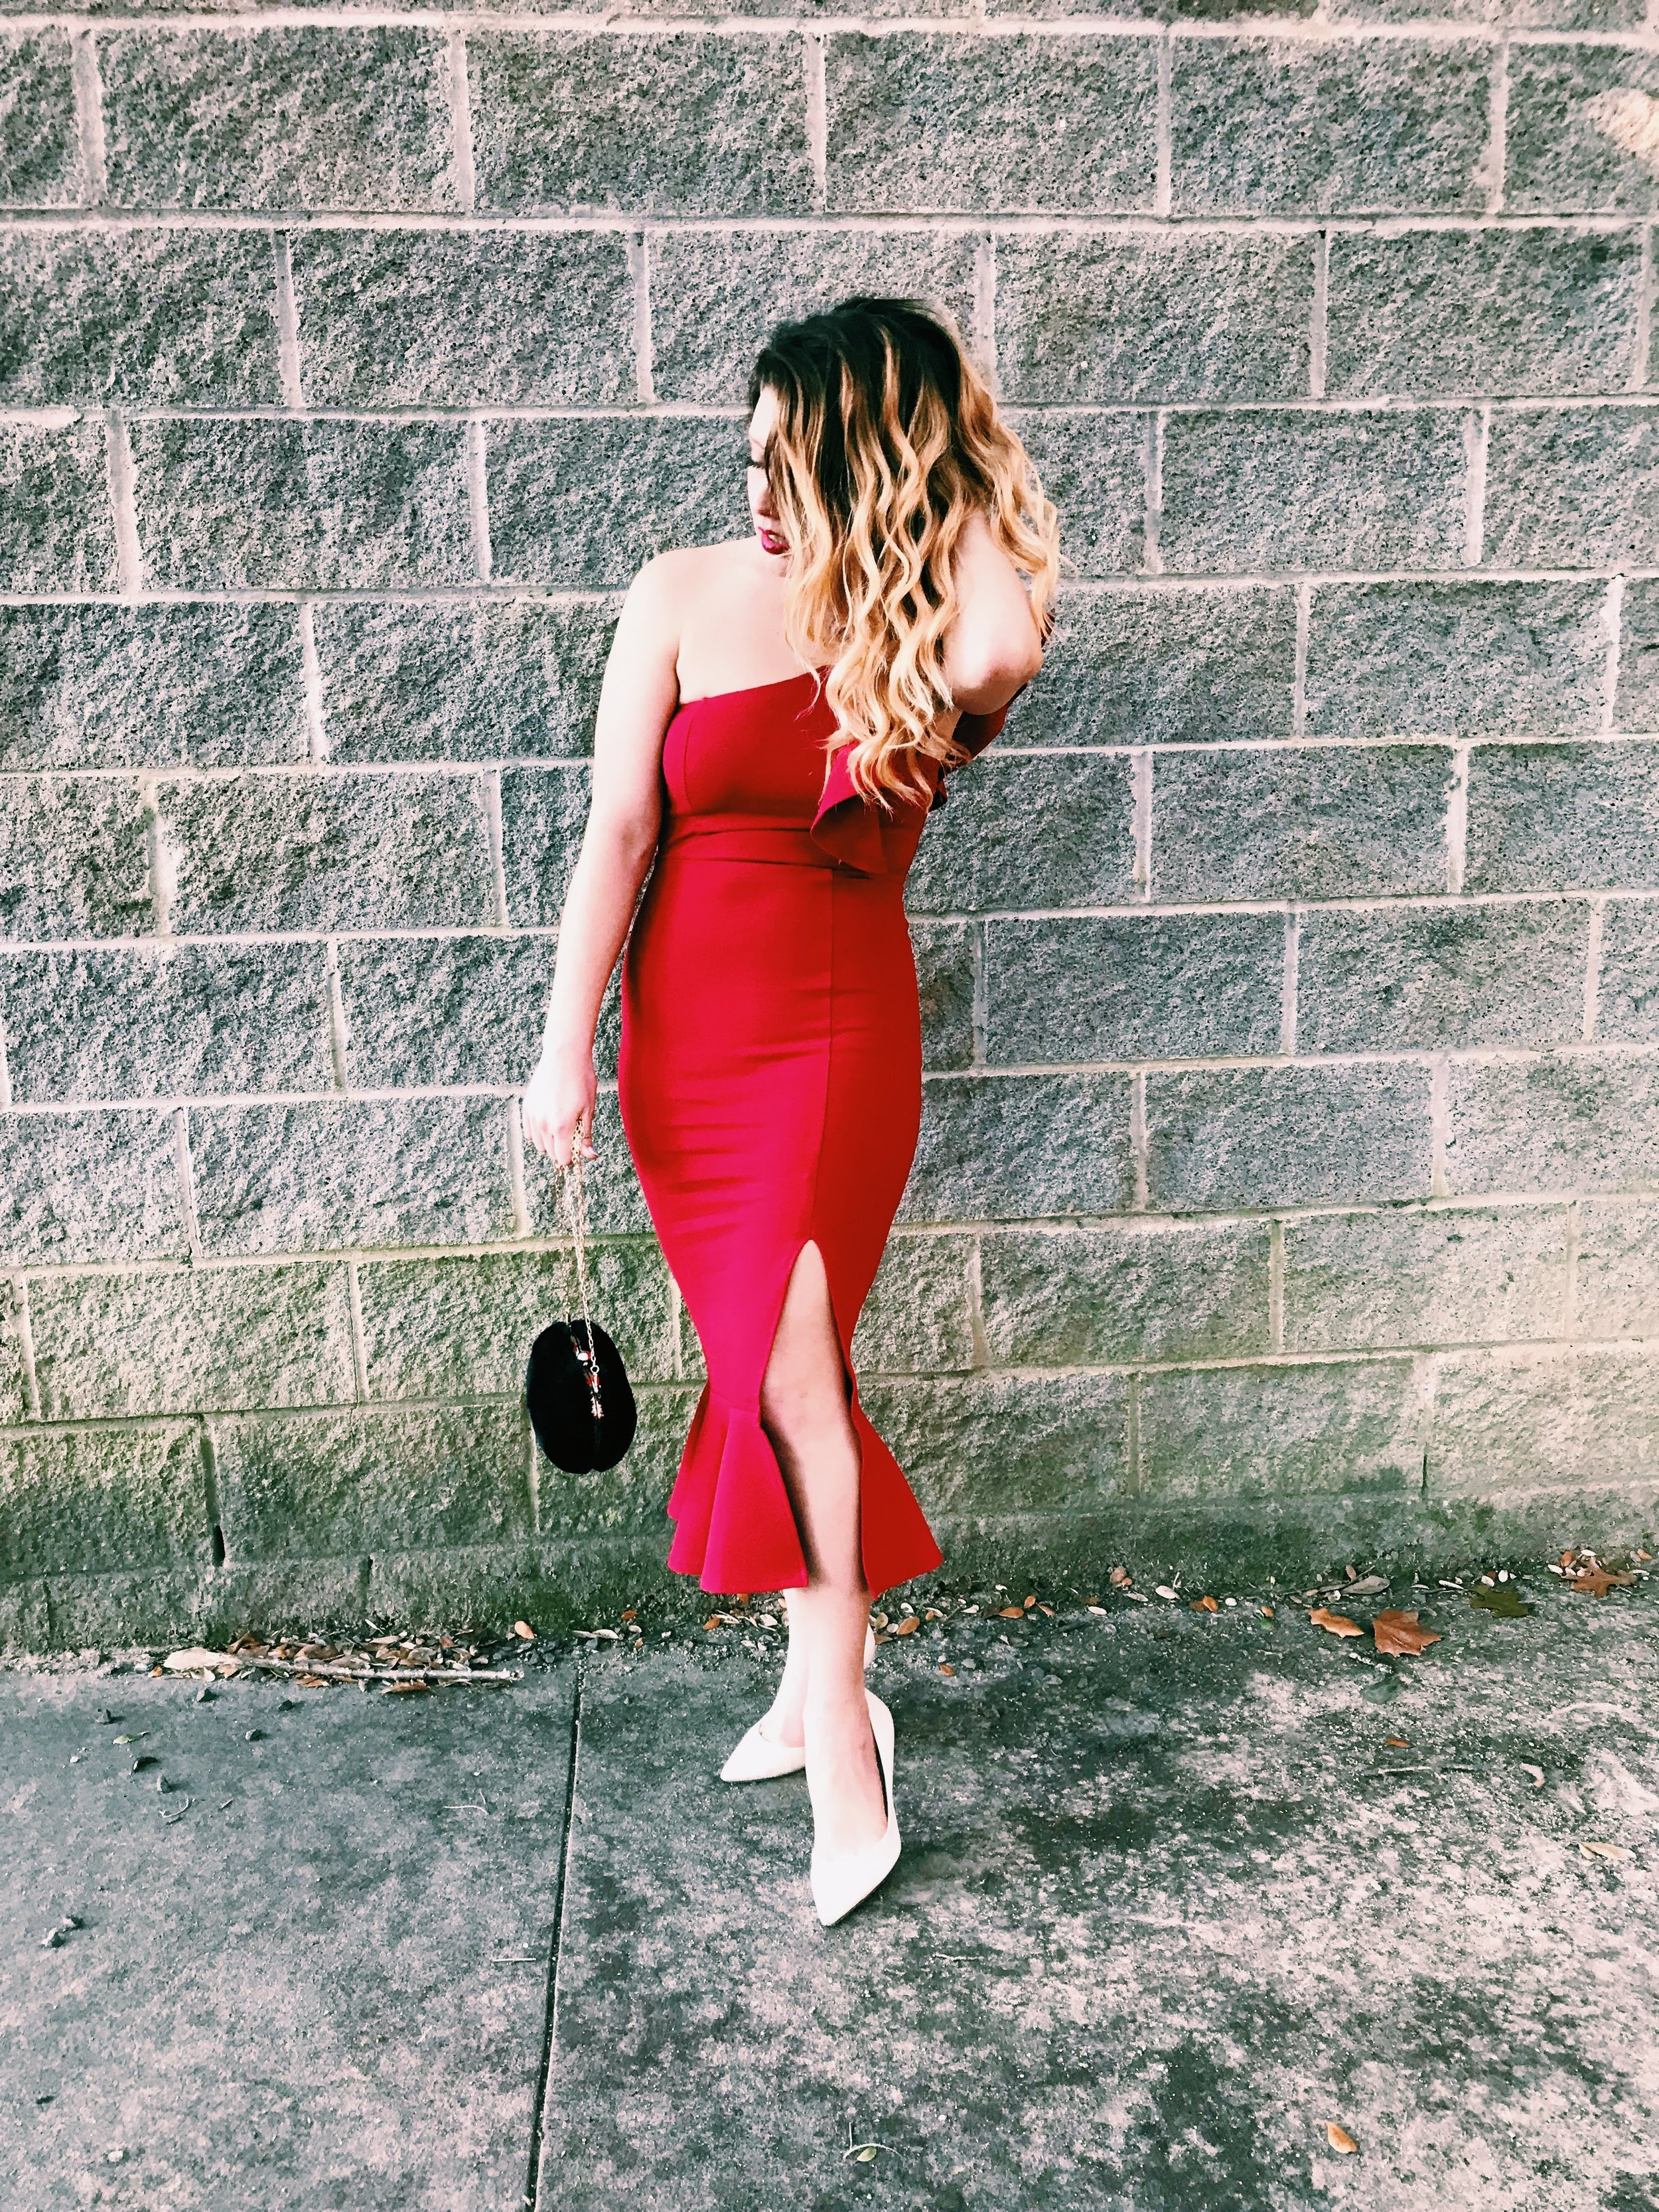 Three Heel Clicks - How to Go All Out Glam for Valentine's Day (4).jpg